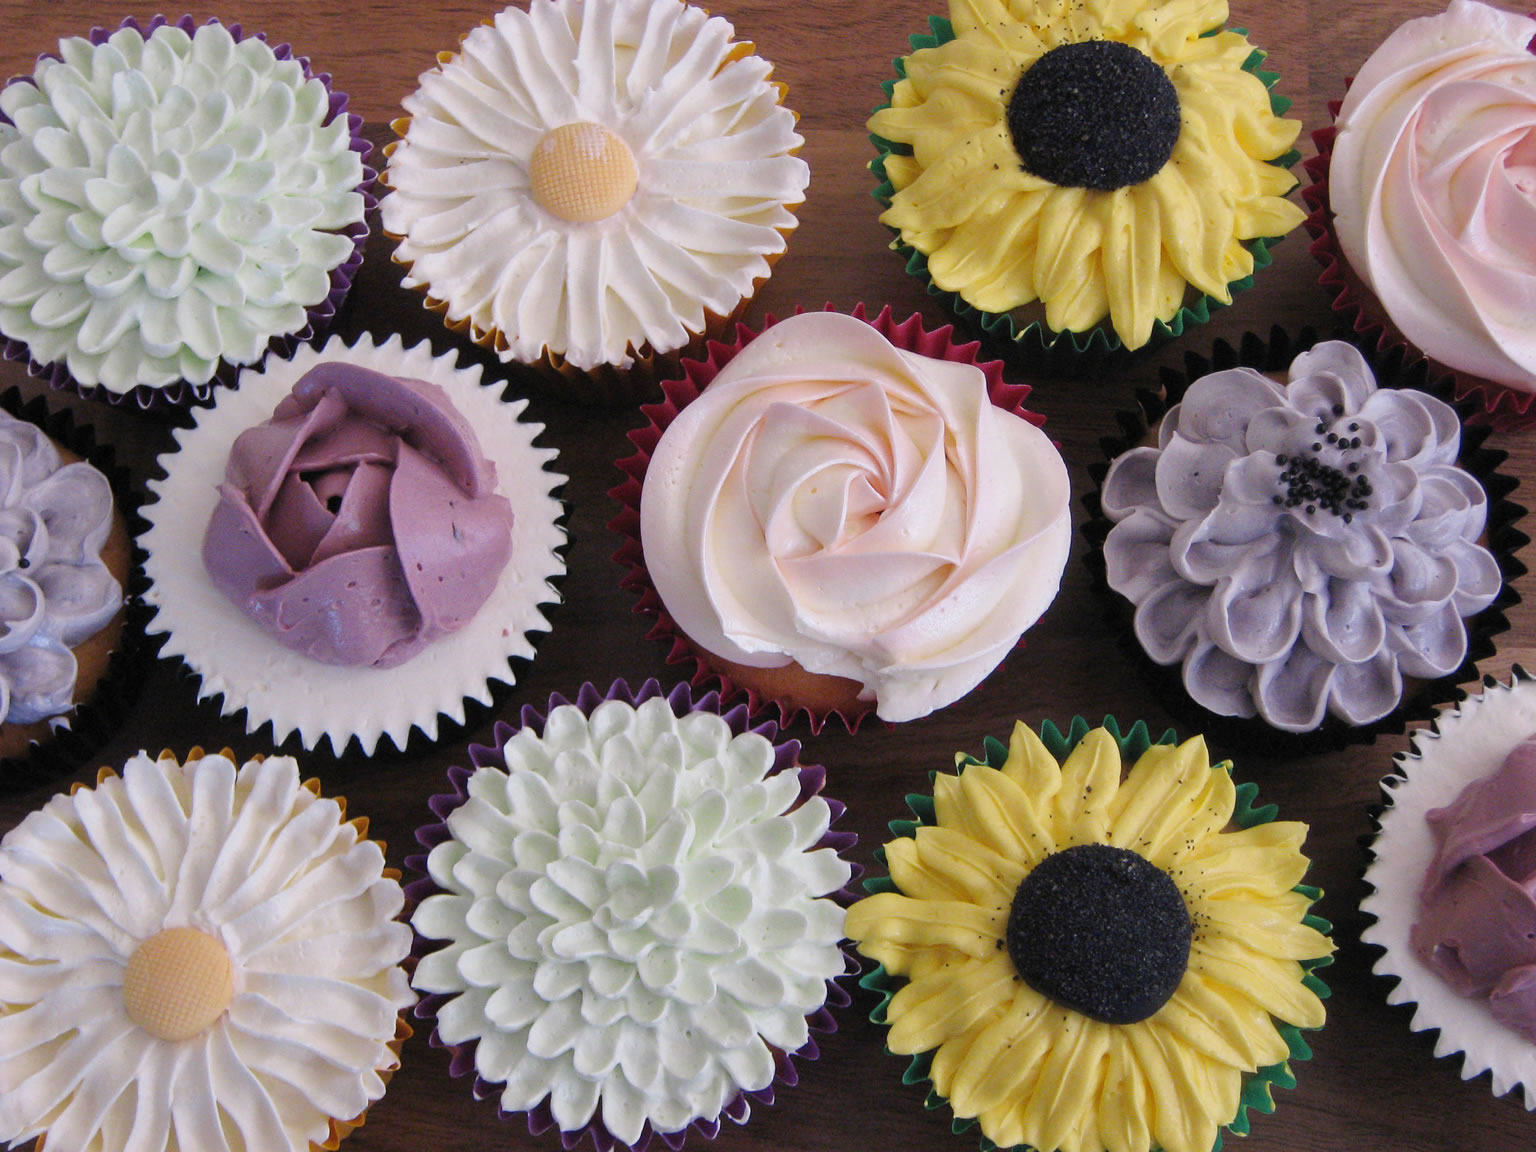 Piped flower cakes